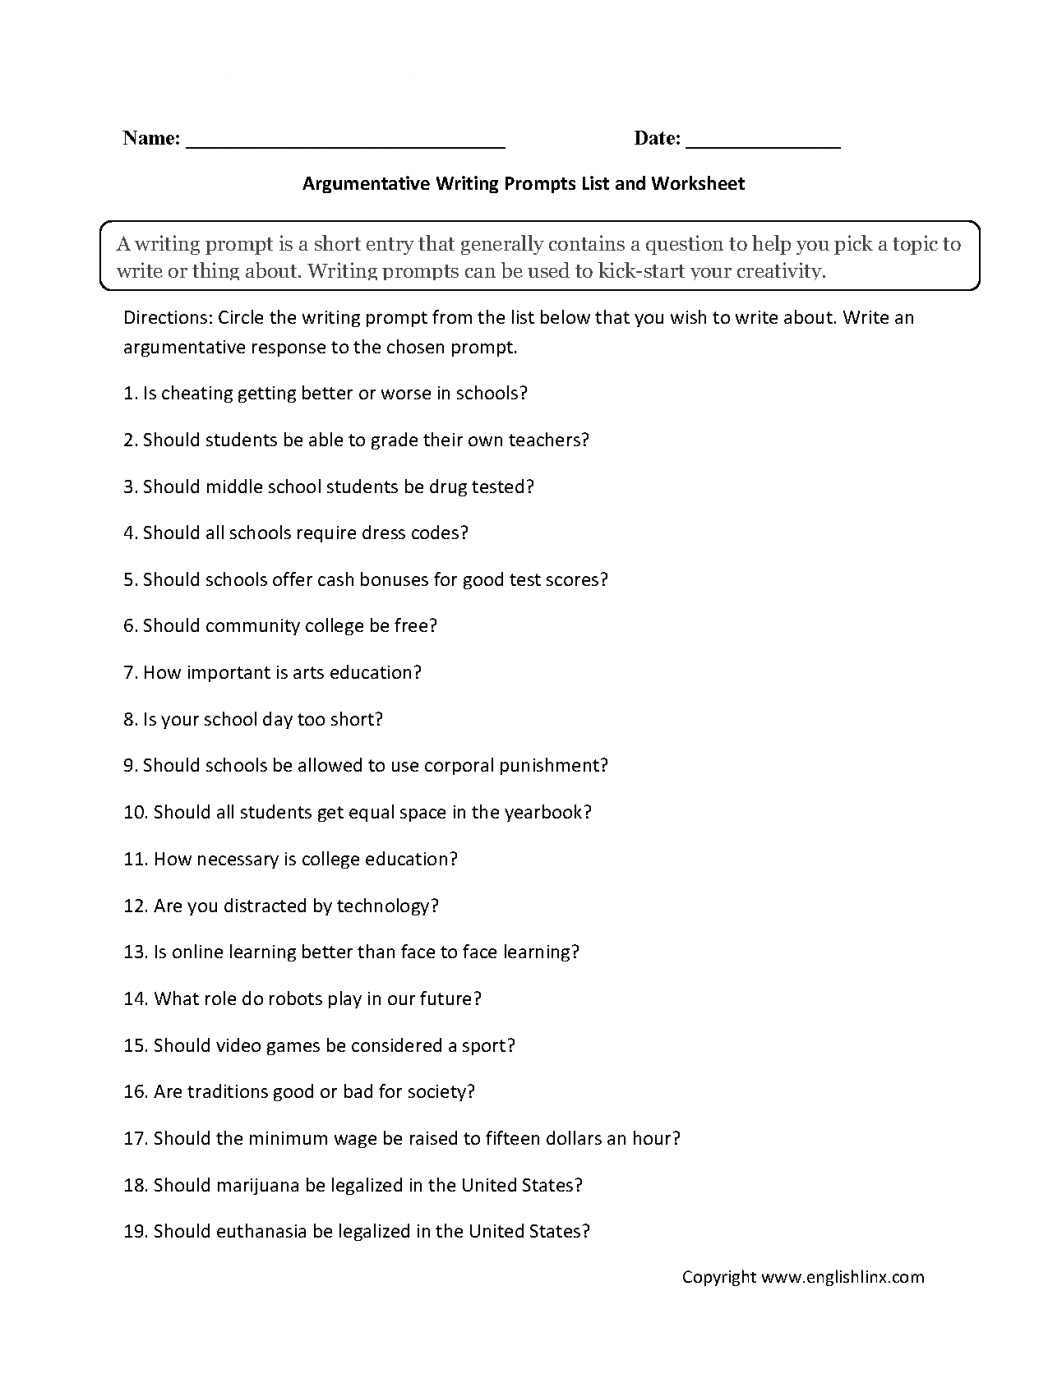 002 Essay Example Argument Prompts Goal Blockety Co Argumentative Topics Writing List Work For High School Subjects About Animals On Racism College Sports Middle Rare Persuasive Students Unique 6th Grade Full